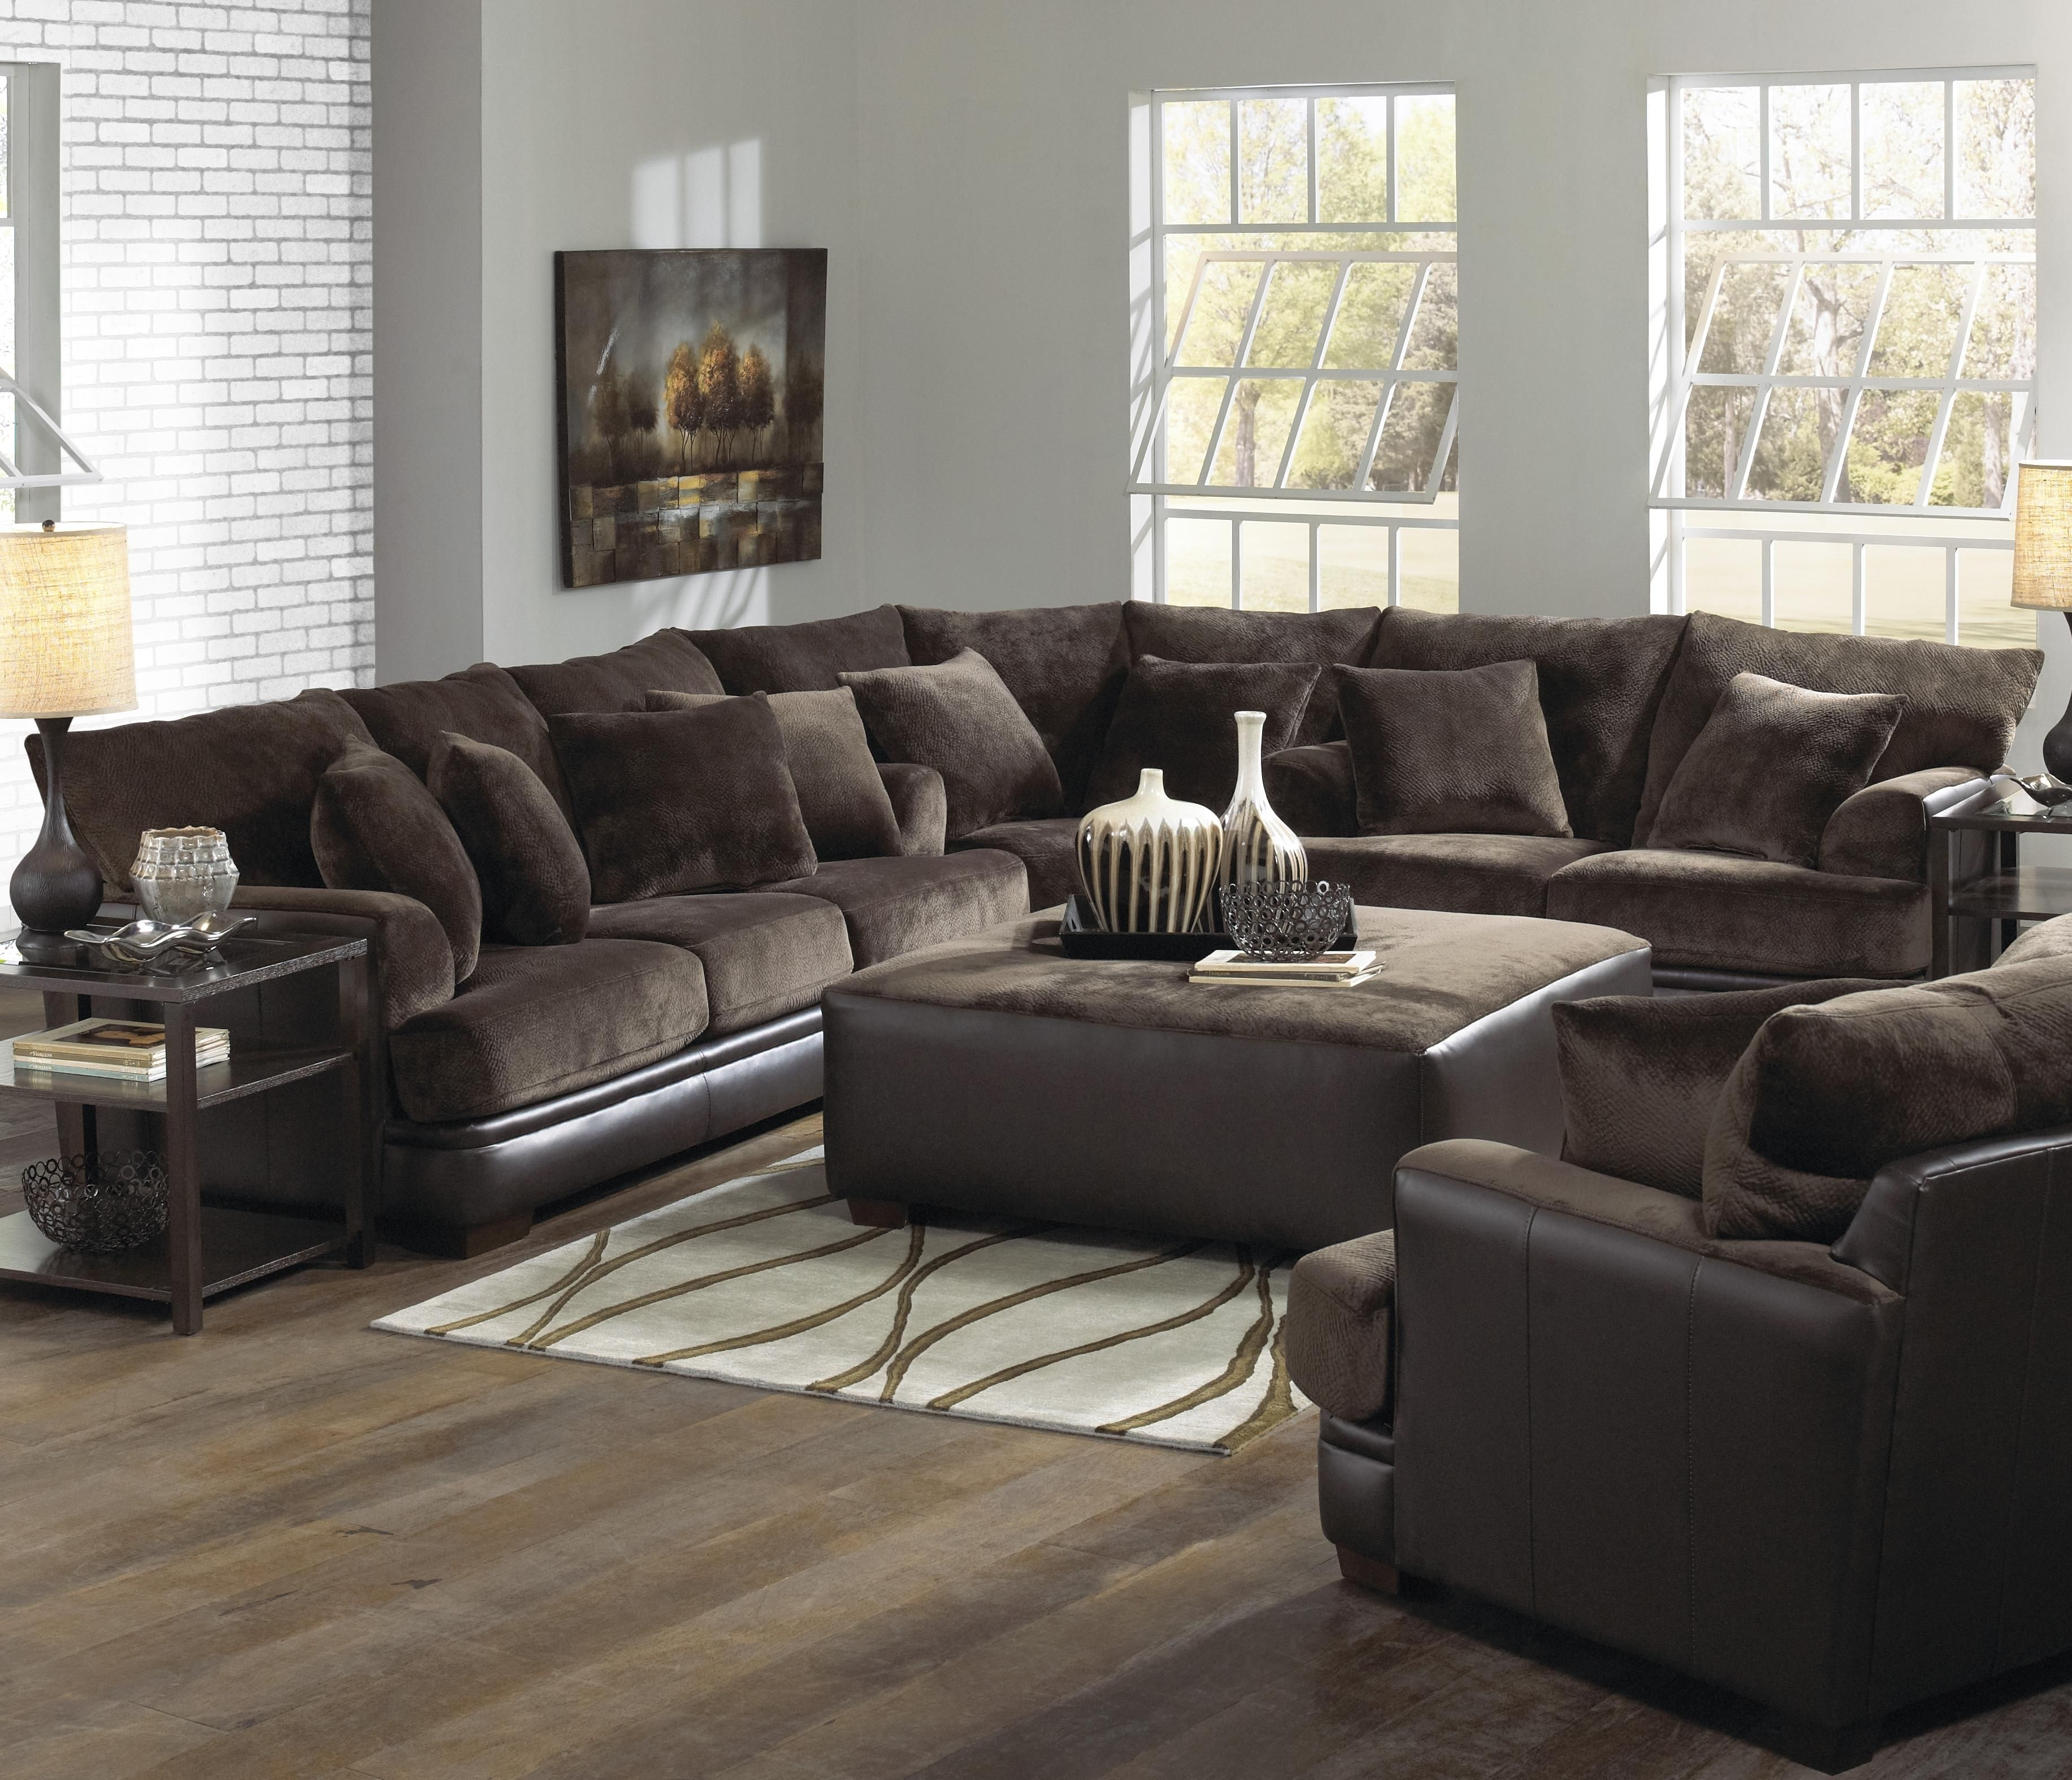 Barkley Large L-Shaped Sectional Sofa With Right Side Loveseat regarding Wide Sectional Sofas (Image 1 of 10)